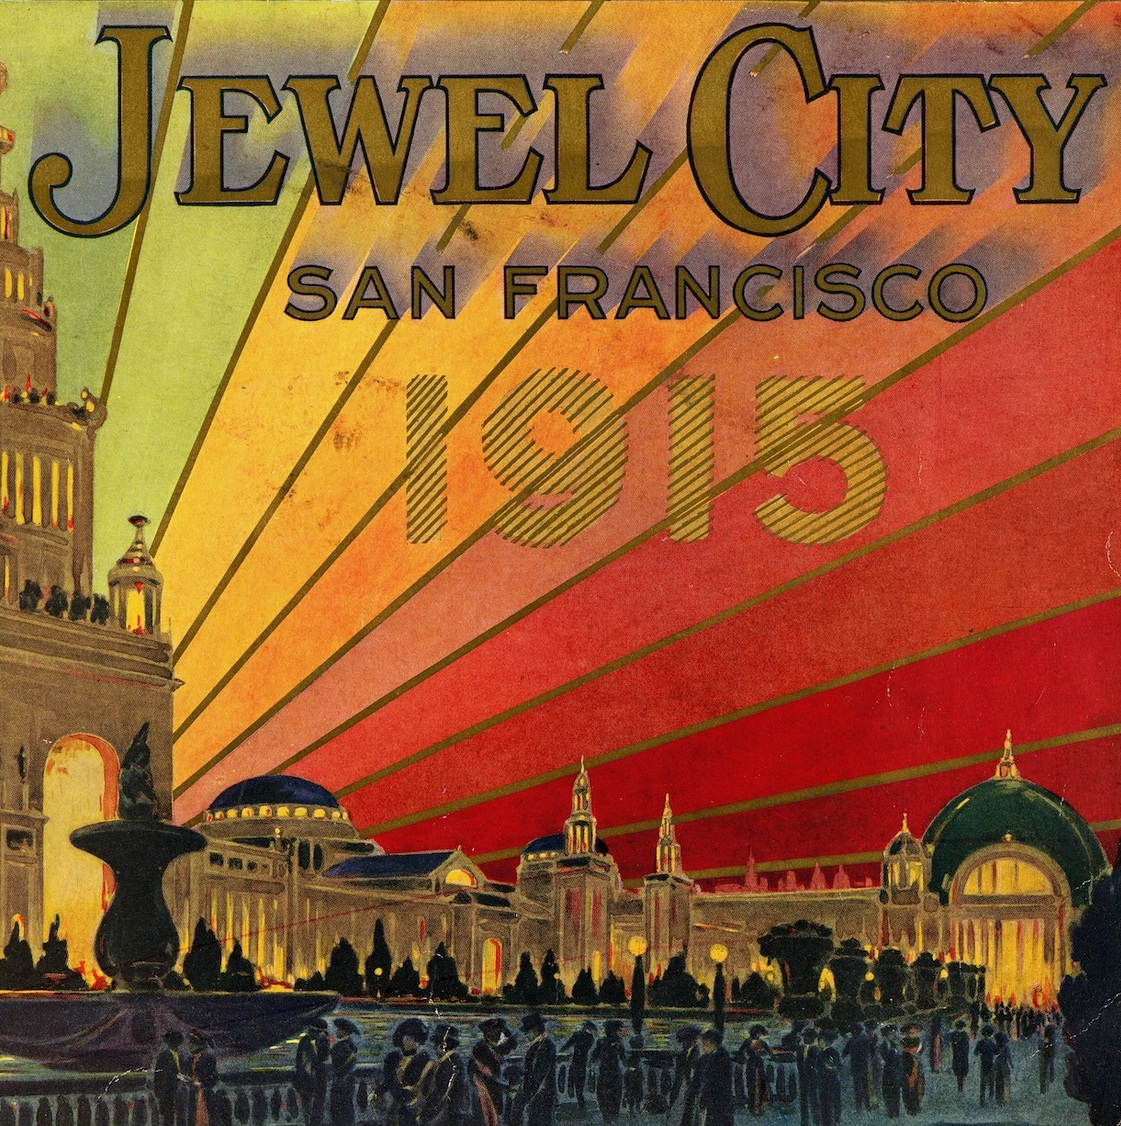 The Jewel City, San Francisco, 1915: Souvenir Views of the Panama-Pacific International Exposition [Cover]